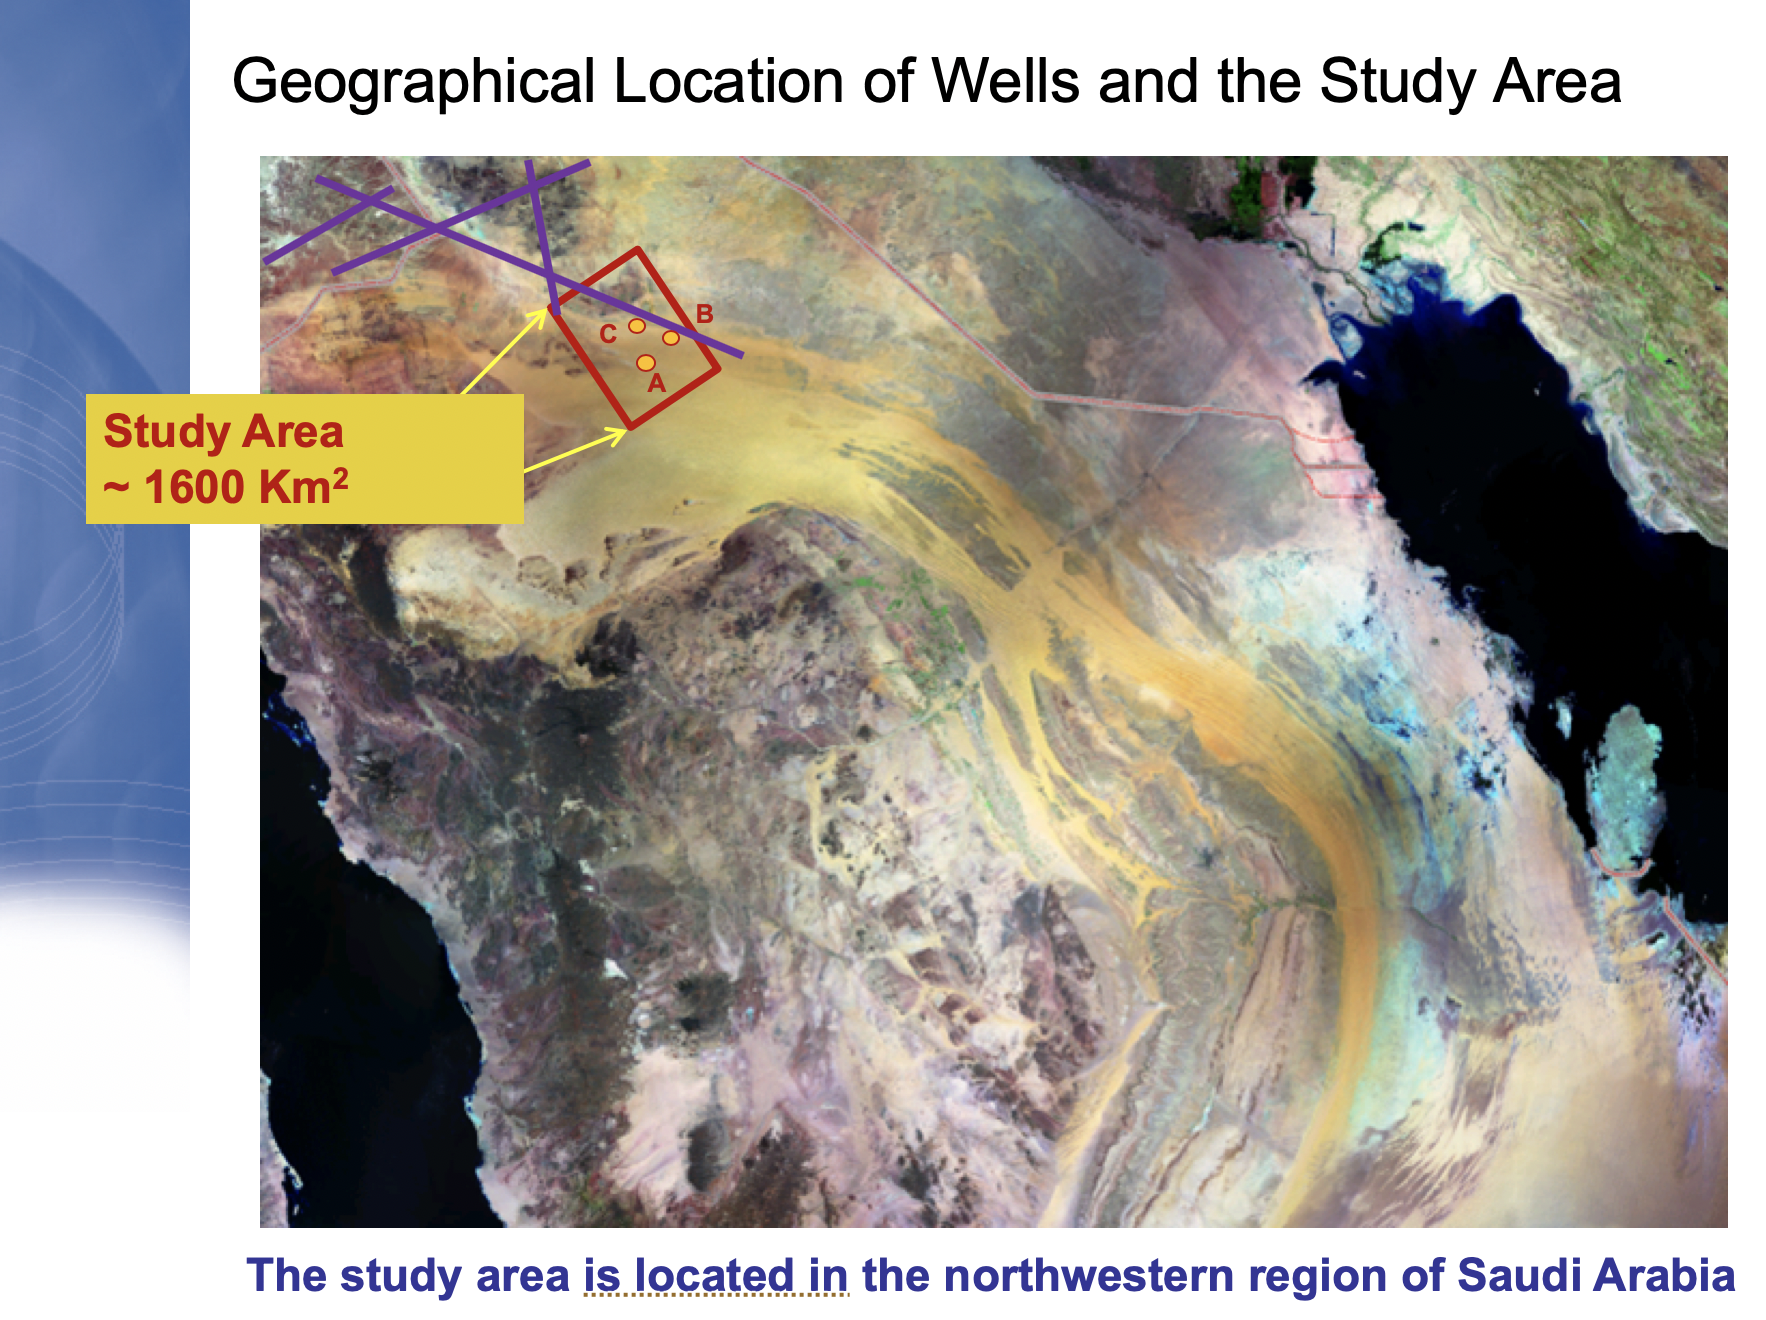 Pore Pressure Prediction from 3D Seismic Data: A Feasibility Study for Unconventional Gas in Saudi Arabia